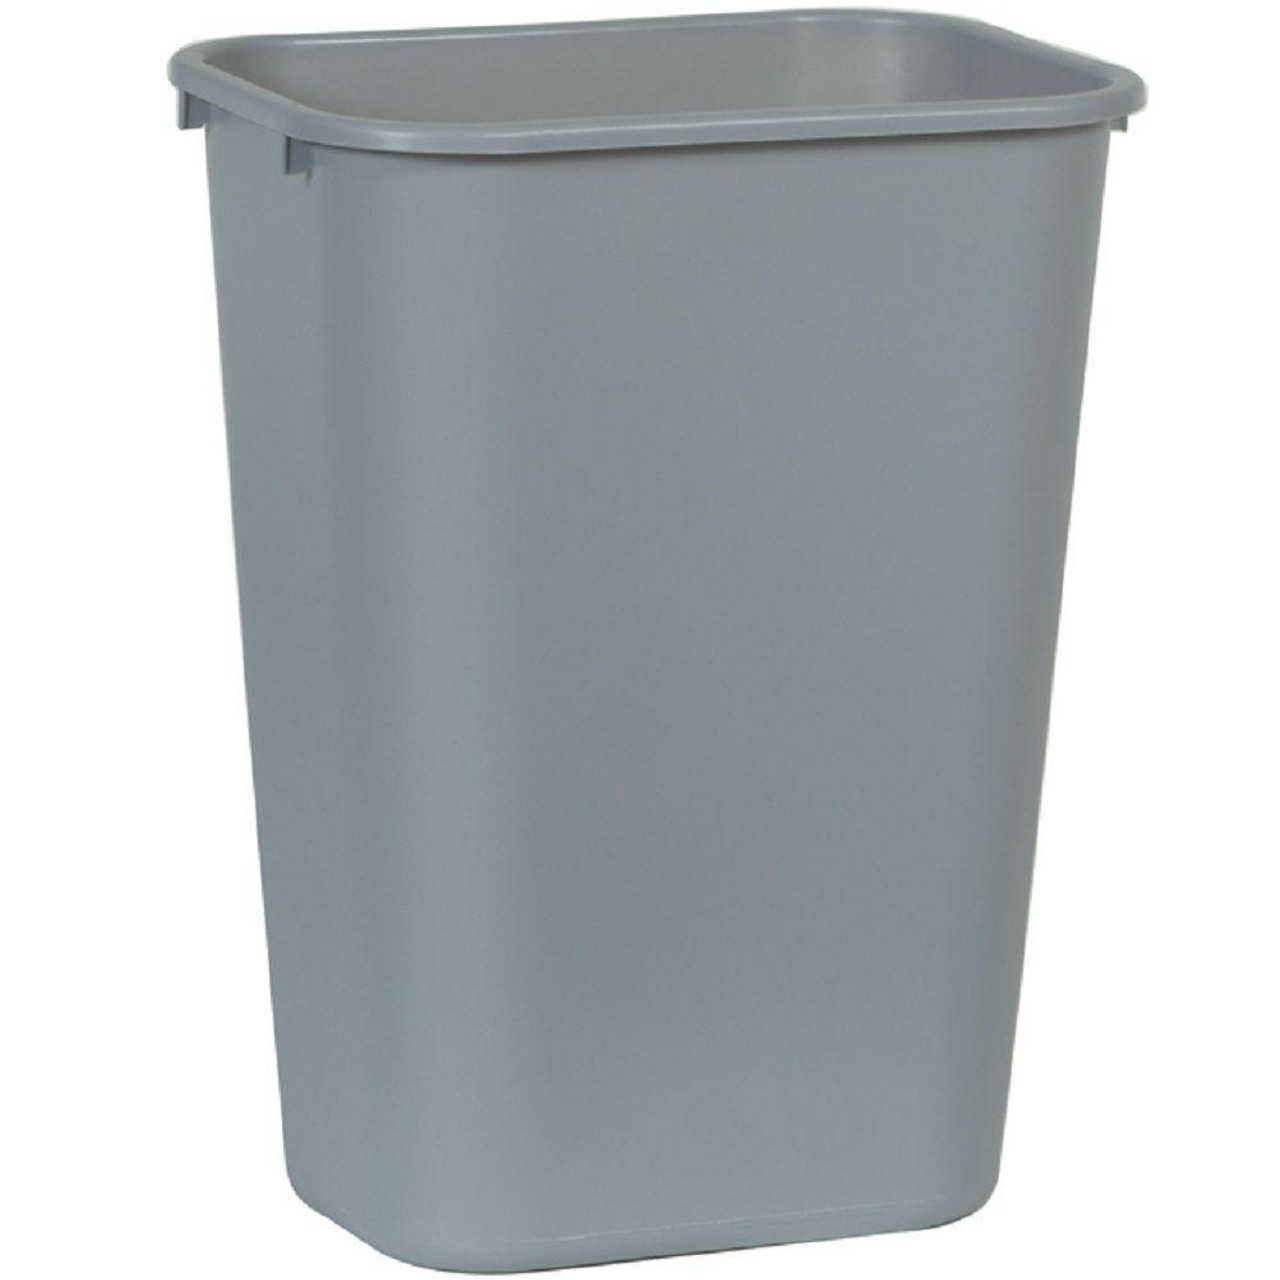 Rubbermaid Rectangular Wastebasket 39 L Grey Fg295700gray Rubbermaid Products